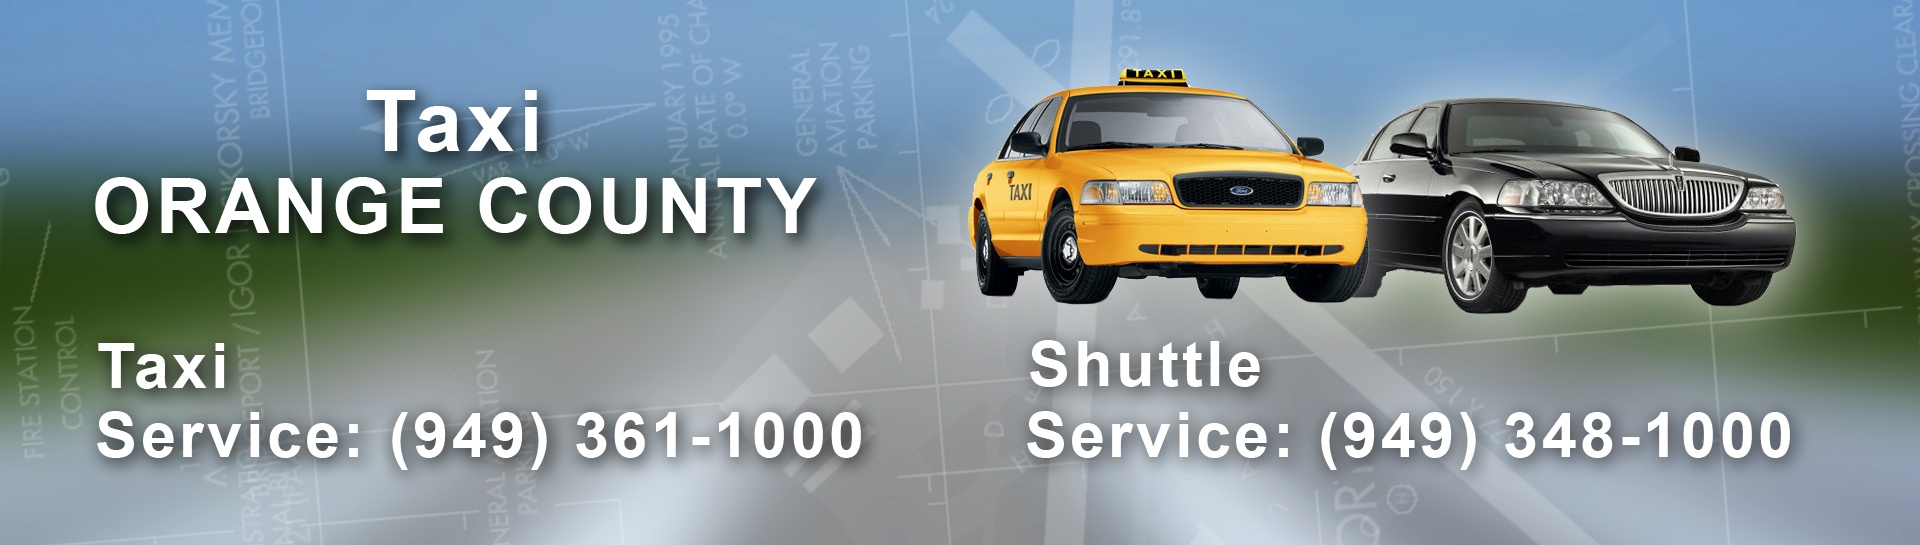 taxicab services